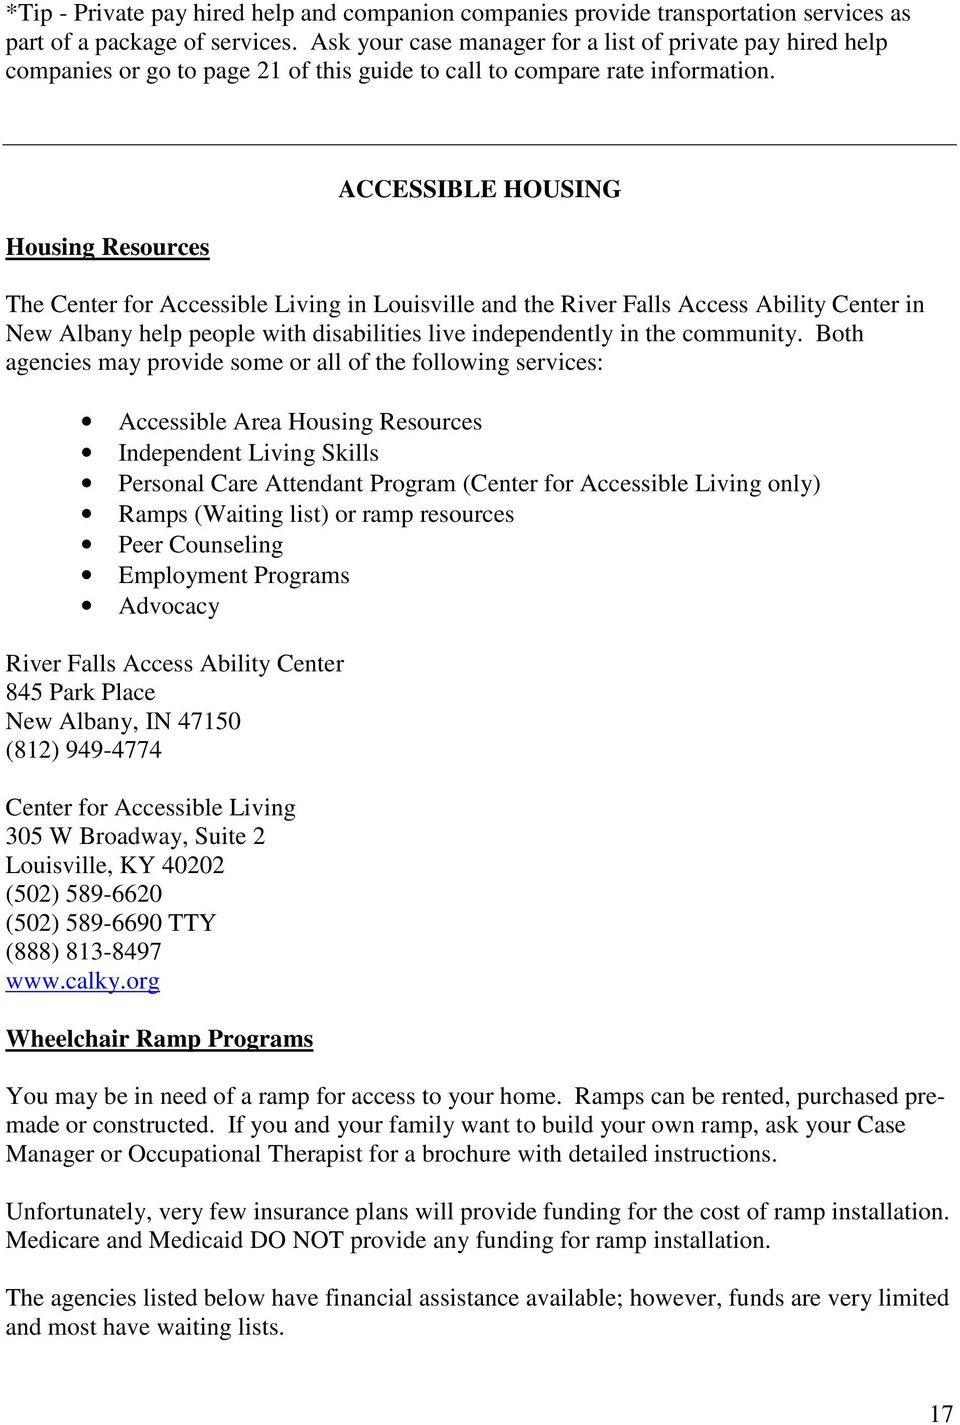 Housing Resources ACCESSIBLE HOUSING The Center for Accessible Living in Louisville and the River Falls Access Ability Center in New Albany help people with disabilities live independently in the